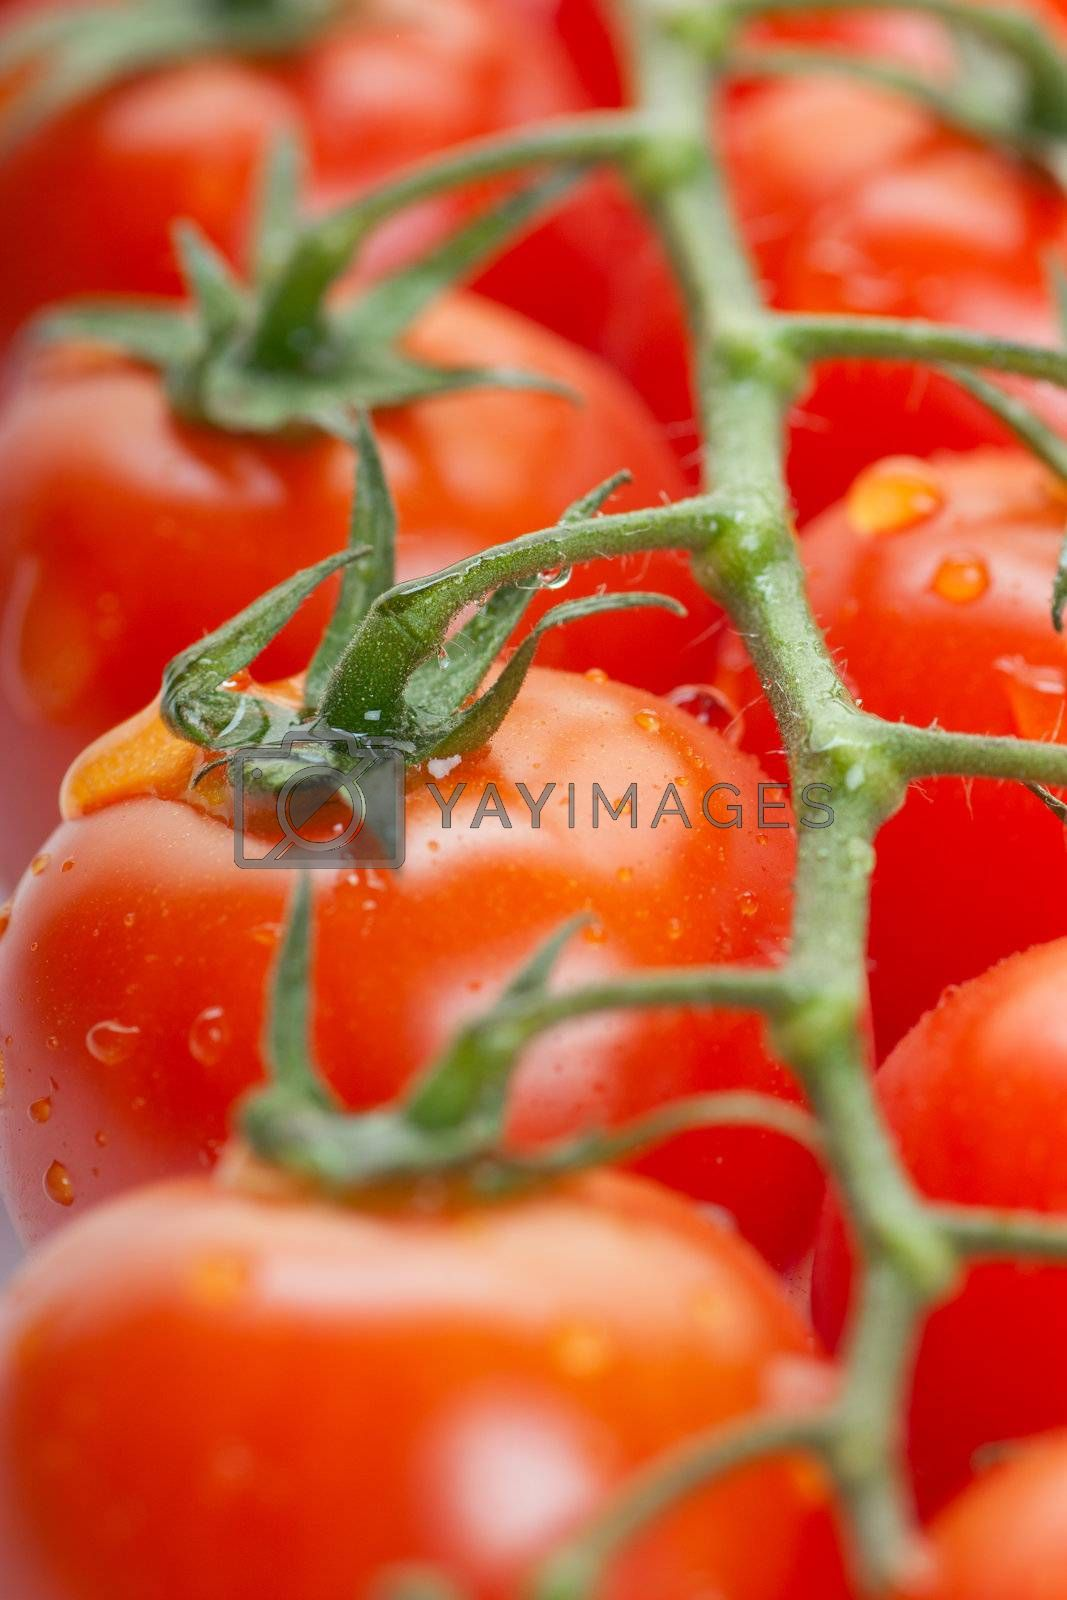 Royalty free image of Tomatoes by AGorohov